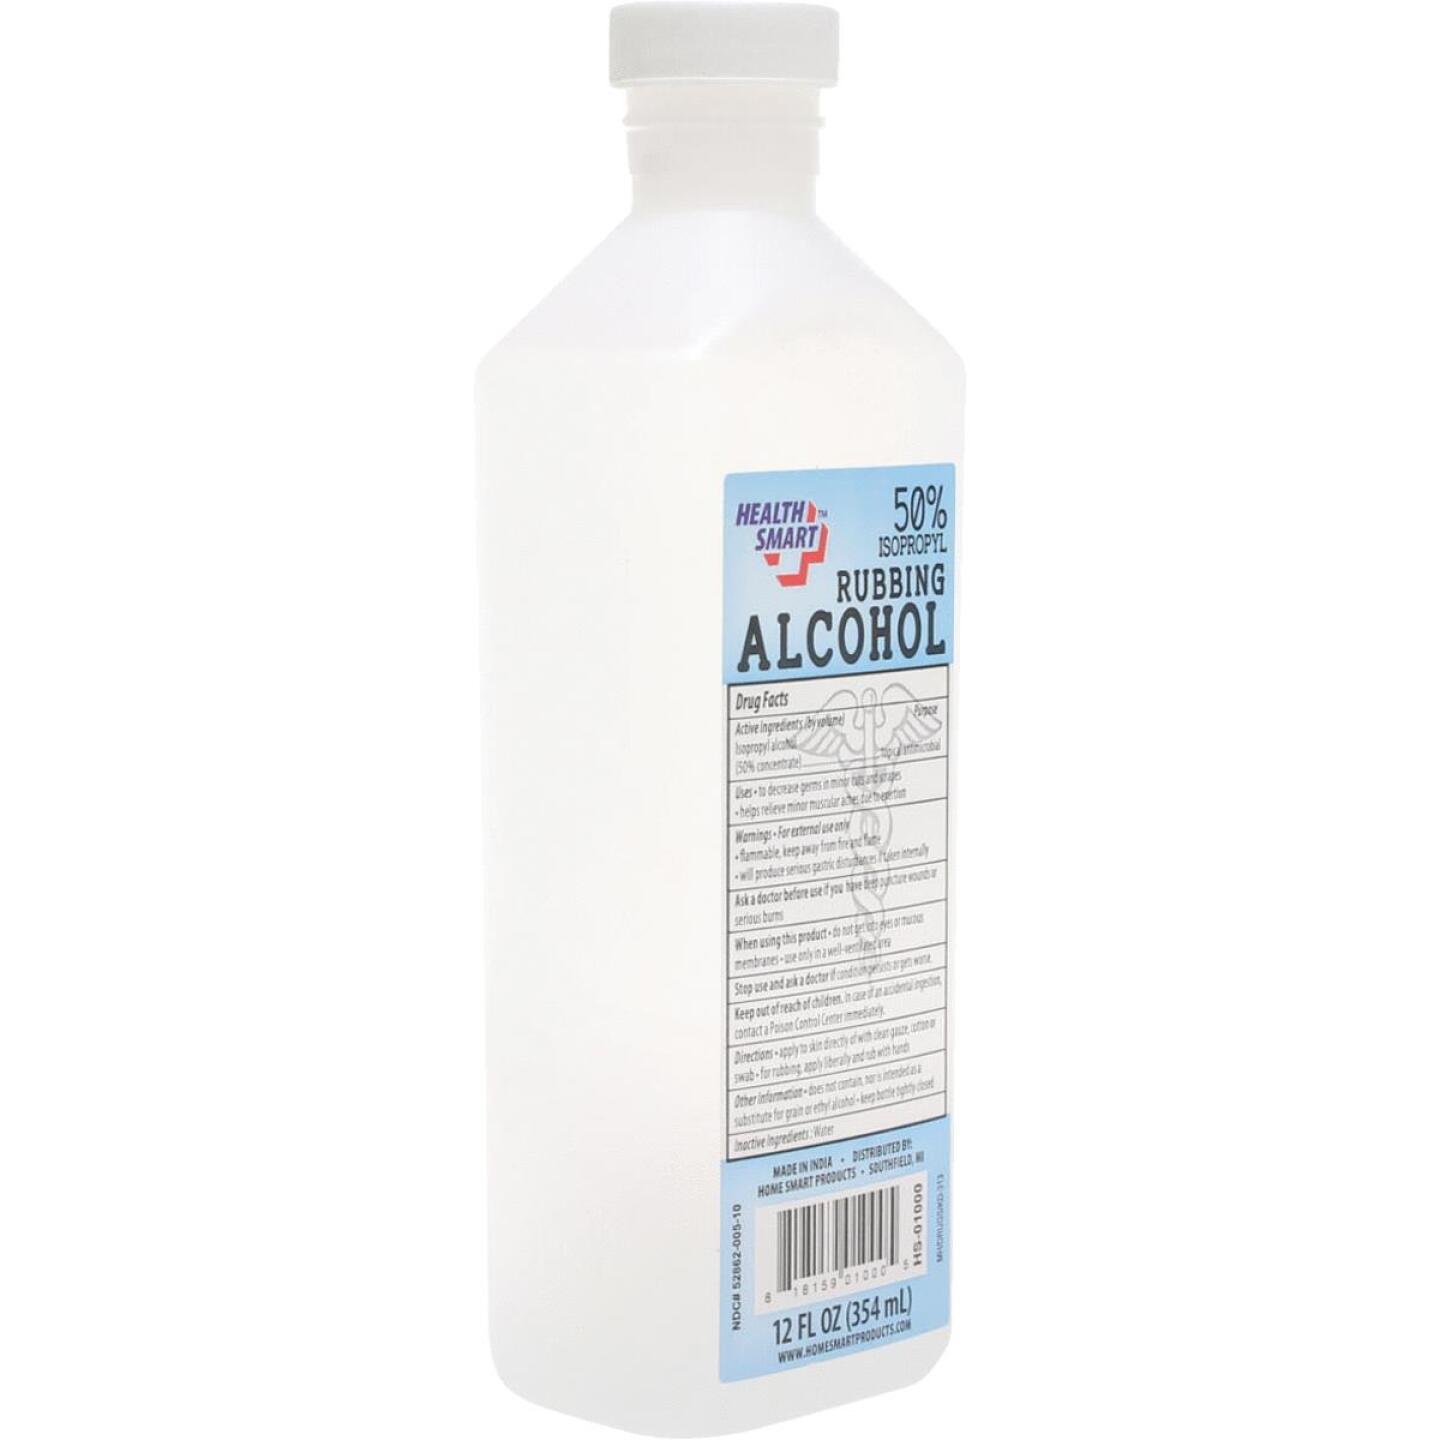 Health Smart 12 Oz. Rubbing Alcohol Image 1